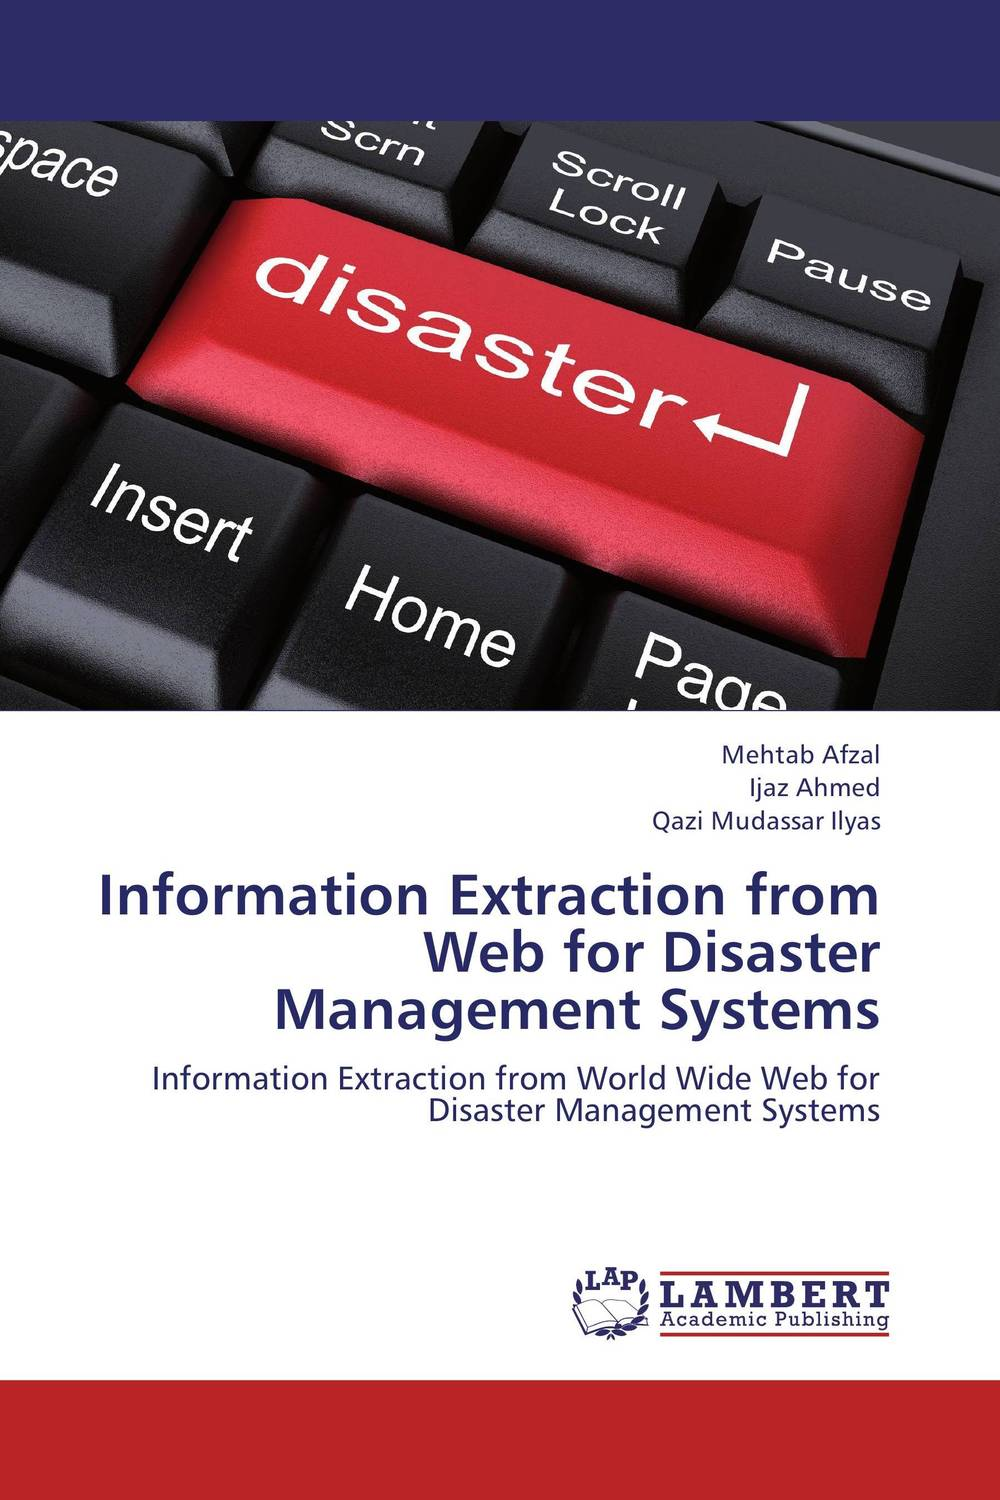 Information Extraction from Web for Disaster Management Systems ballis stacey recipe for disaster